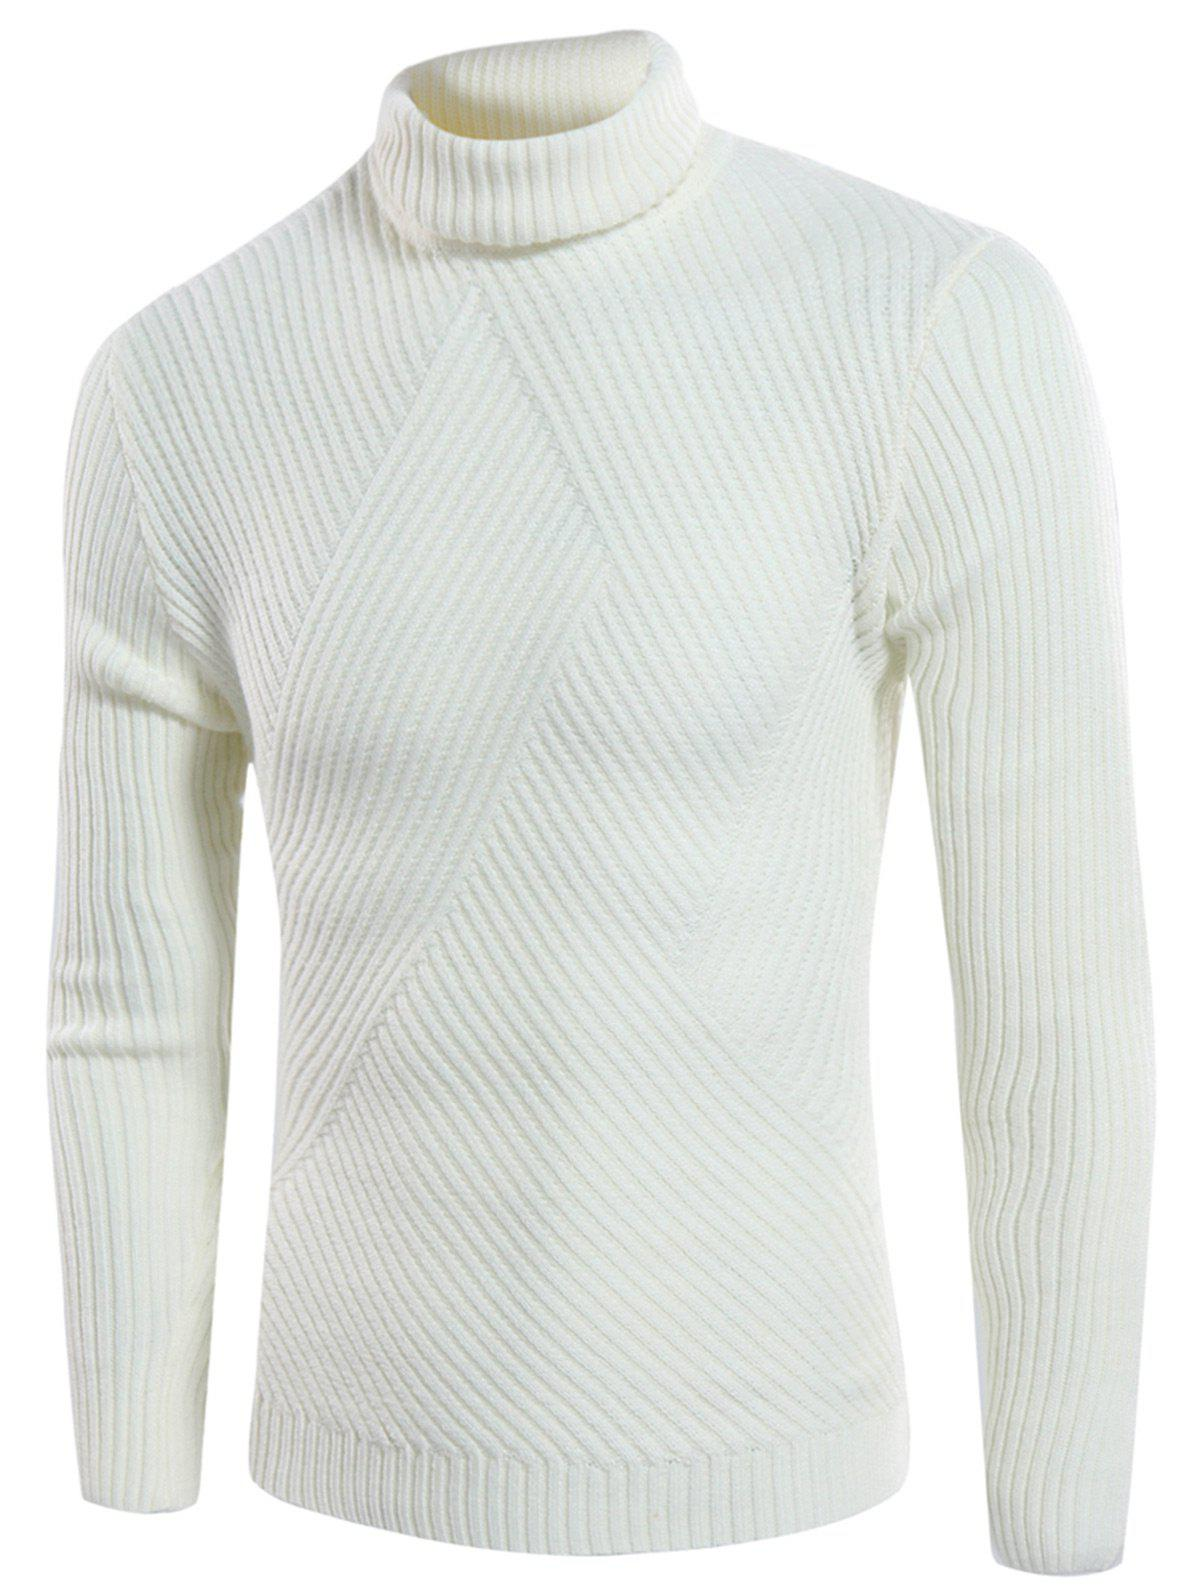 Turtle Neck Rib Design Twill Knitting Sweater - OFF WHITE L